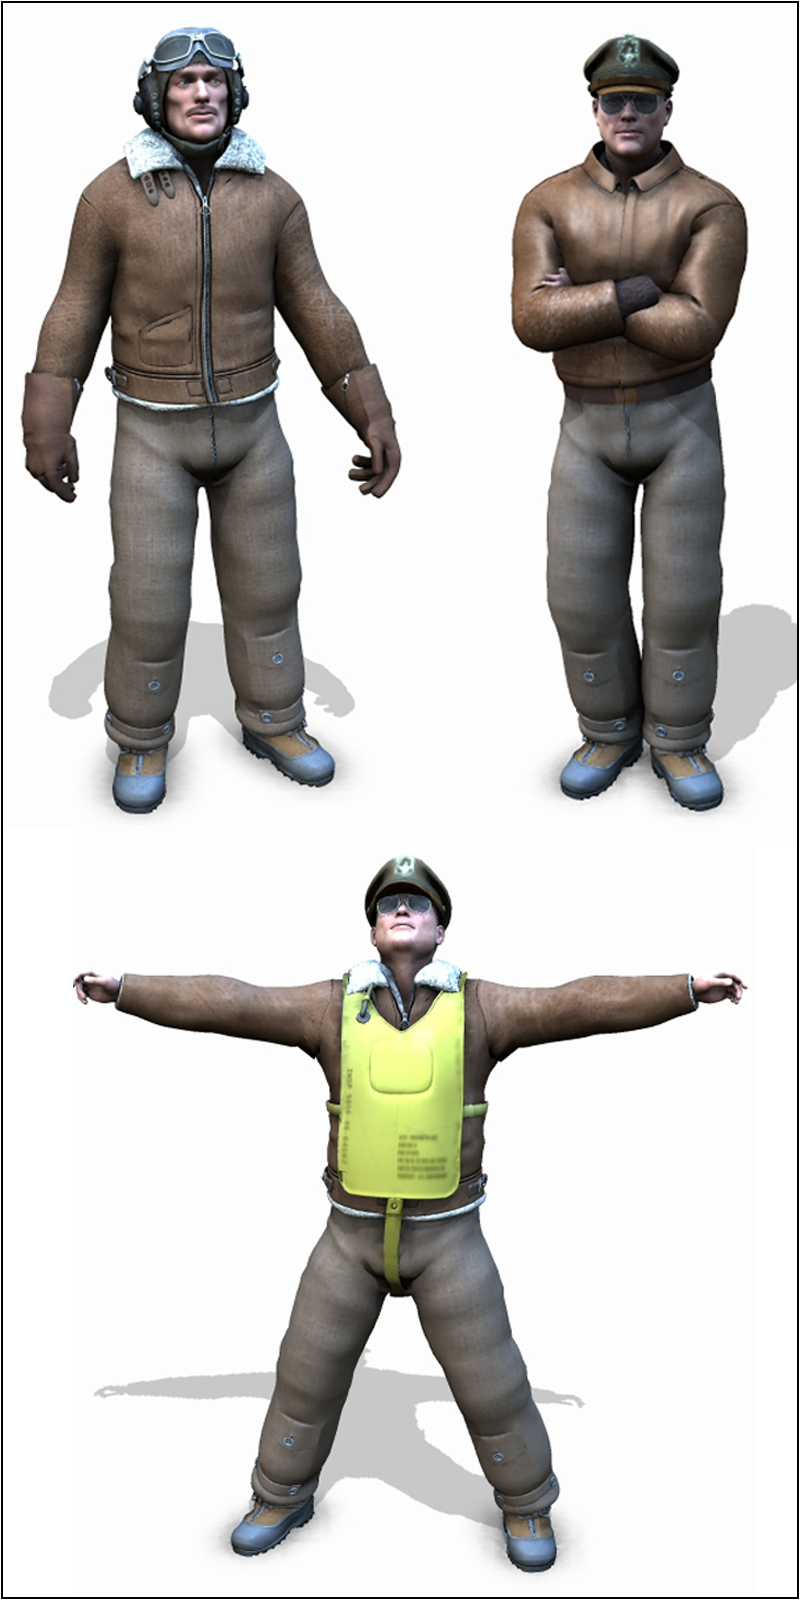 3d Models For Poser And Daz Studio: WW2 USAAF Pilot Pack 3D Models 3D Figure Assets Adh3d